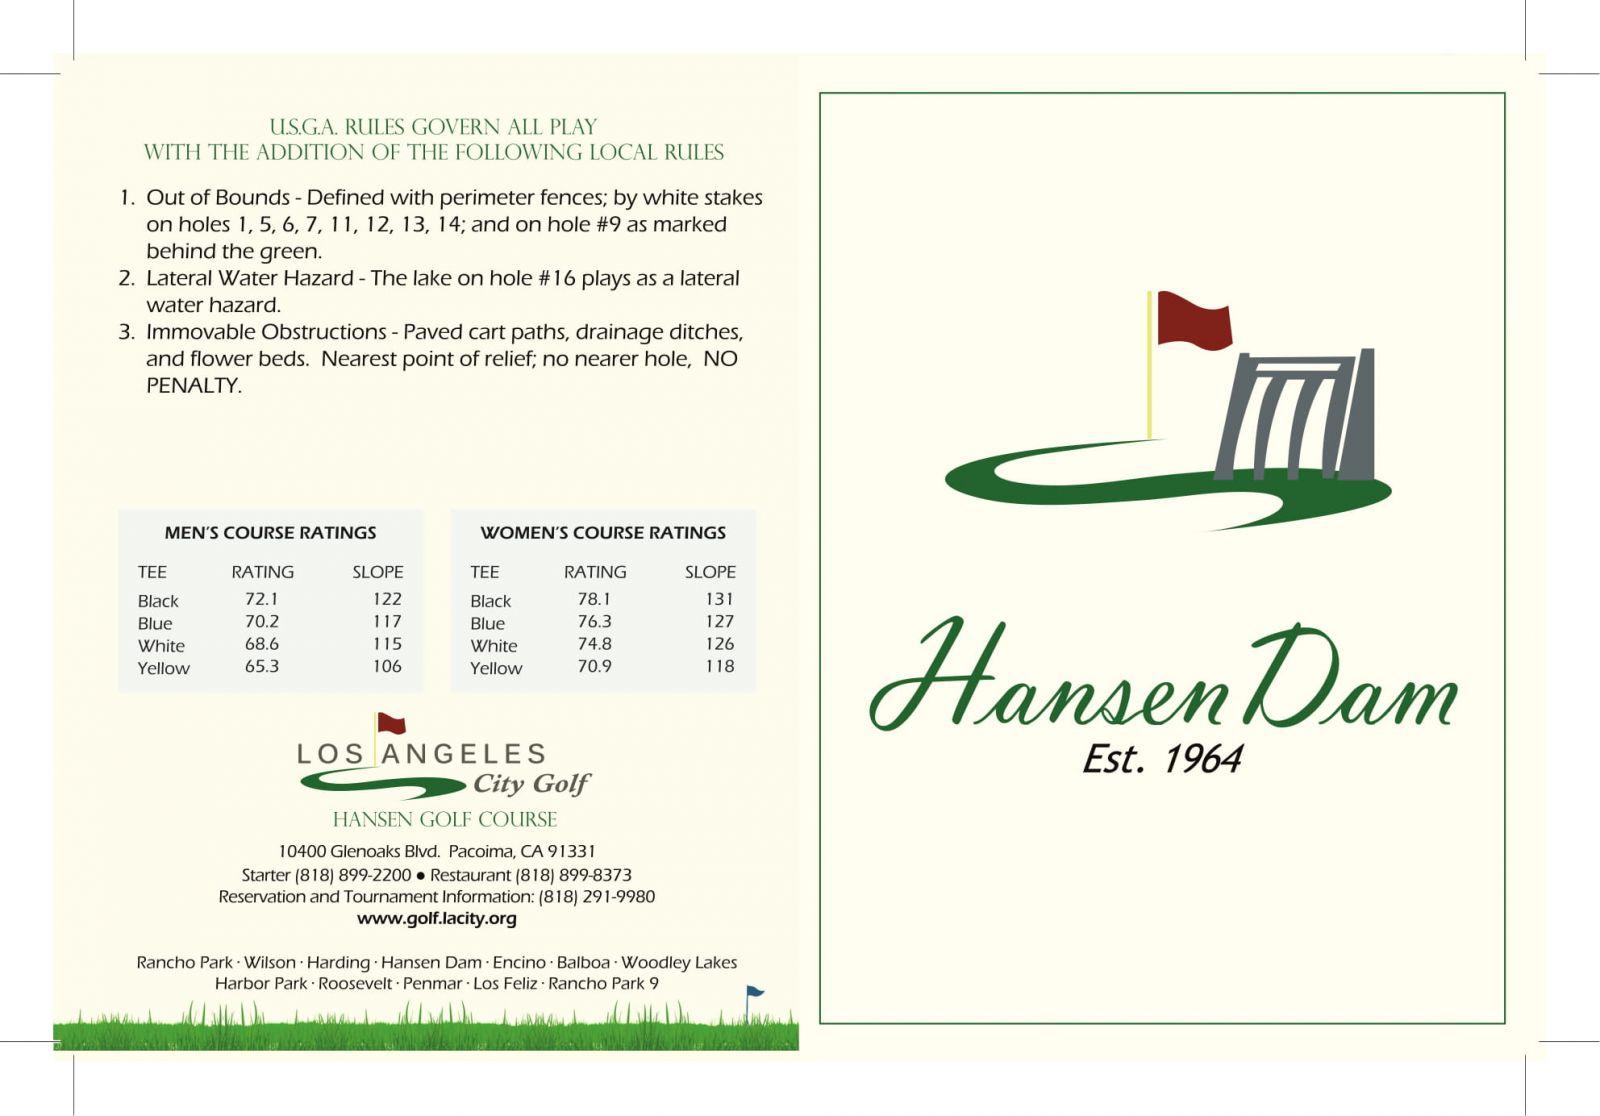 Hansen Dam Golf Course scorecard outside